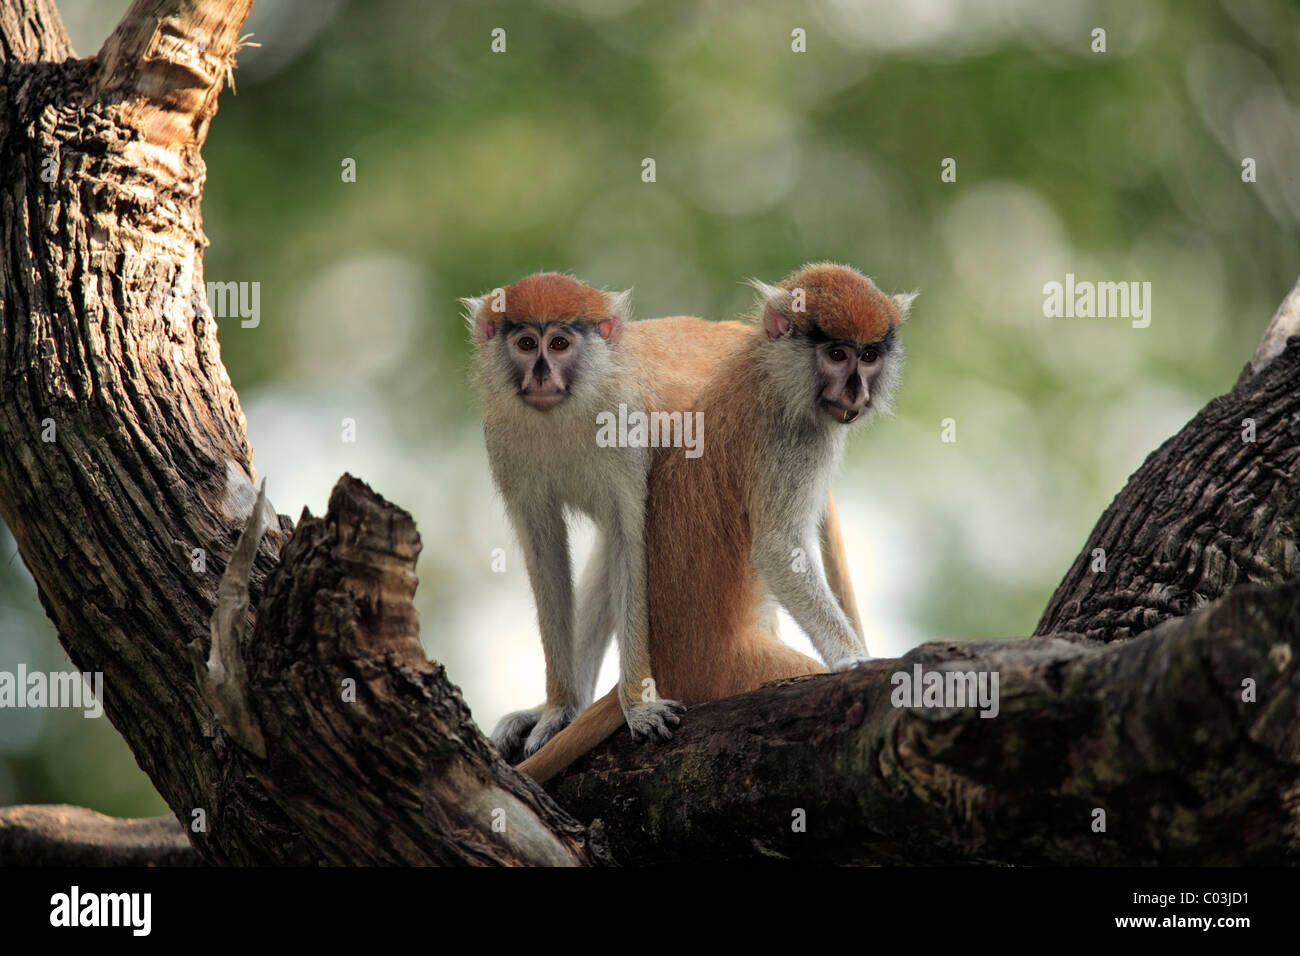 Patas Monkey (Erythrocebus patas), two juveniles in a tree, The Gambia, Africa - Stock Image